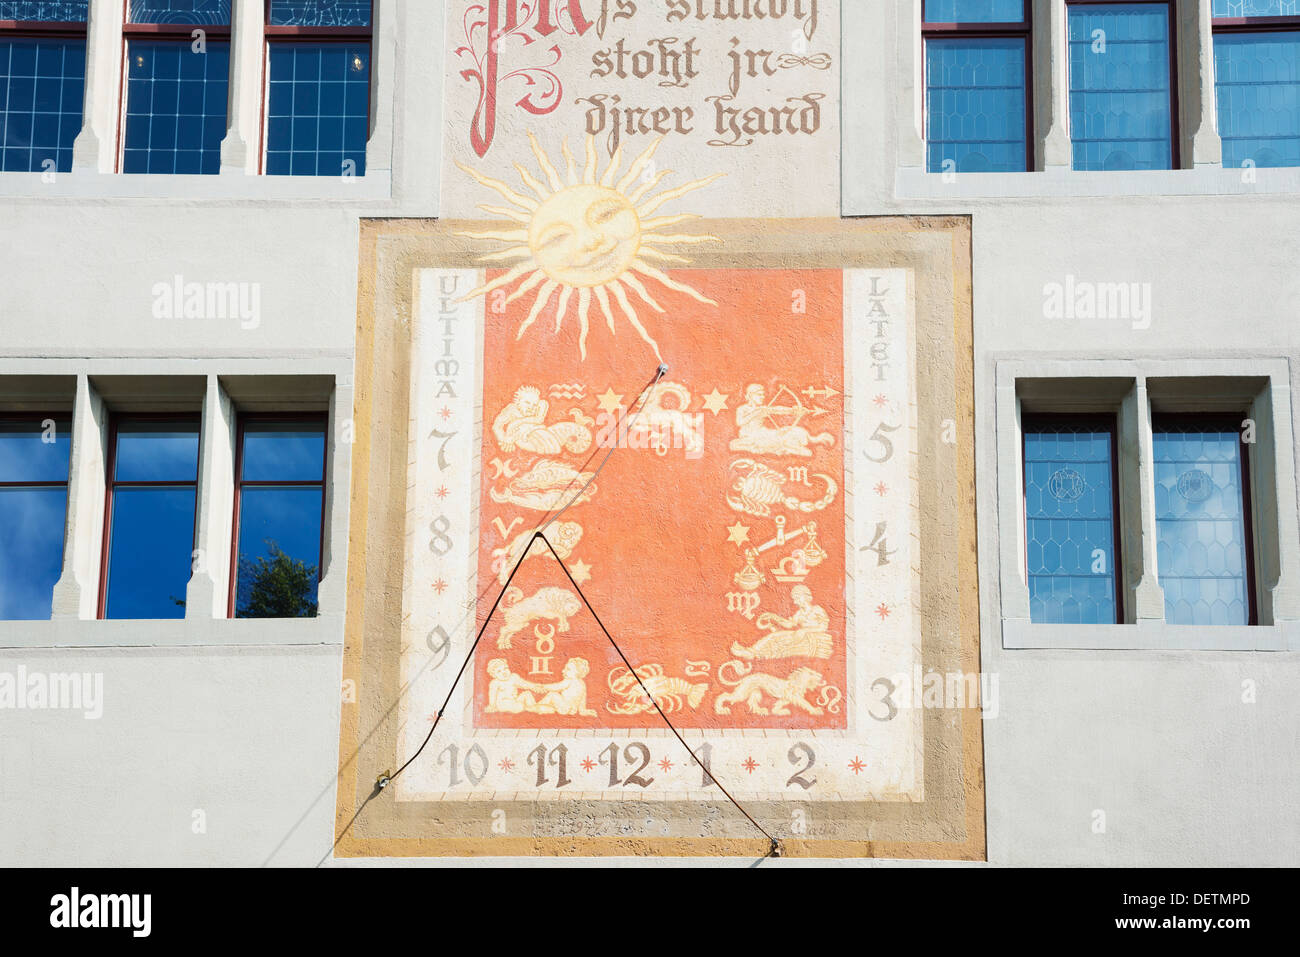 Europe, Switzerland, Rapperswil Jona old town, sun dial - Stock Image